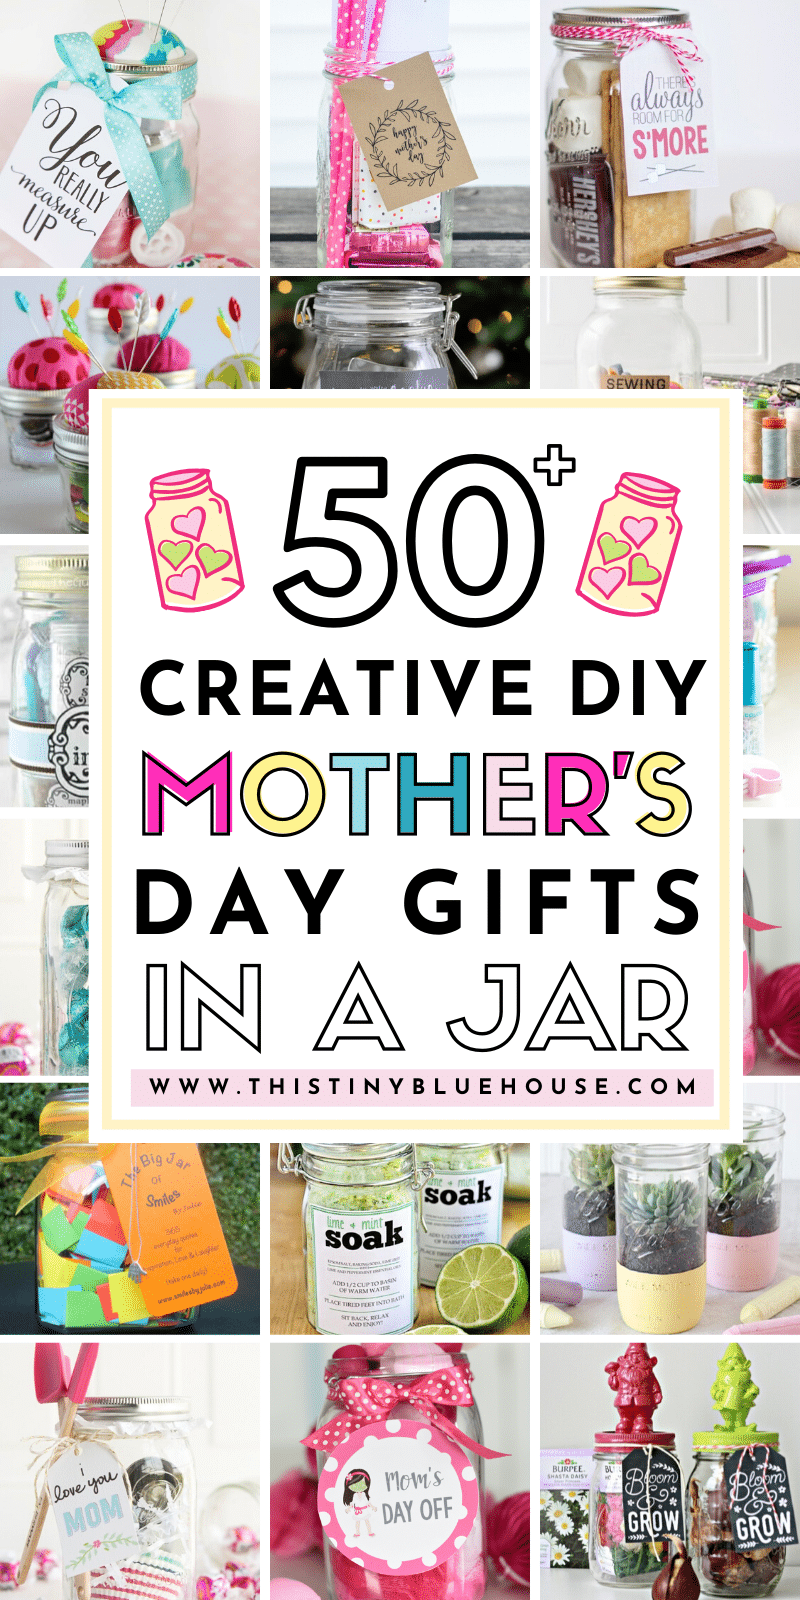 re you looking for the perfect personalized DIY gift for Mom this year? Here are over 50 super thoughtful and creative Mother's Day Gifts In a Jar that are the perfect way to make Mom feel extra special. #mothersdaygifts #mothersdaygiftsdiy #mothersdaygiftsfromkids #homemademothersdaygifts #diymothersdaygifts #giftsinajar #diygiftsinajar #easygiftsinajar #giftsinajarformothersday #giftsinajarformoms